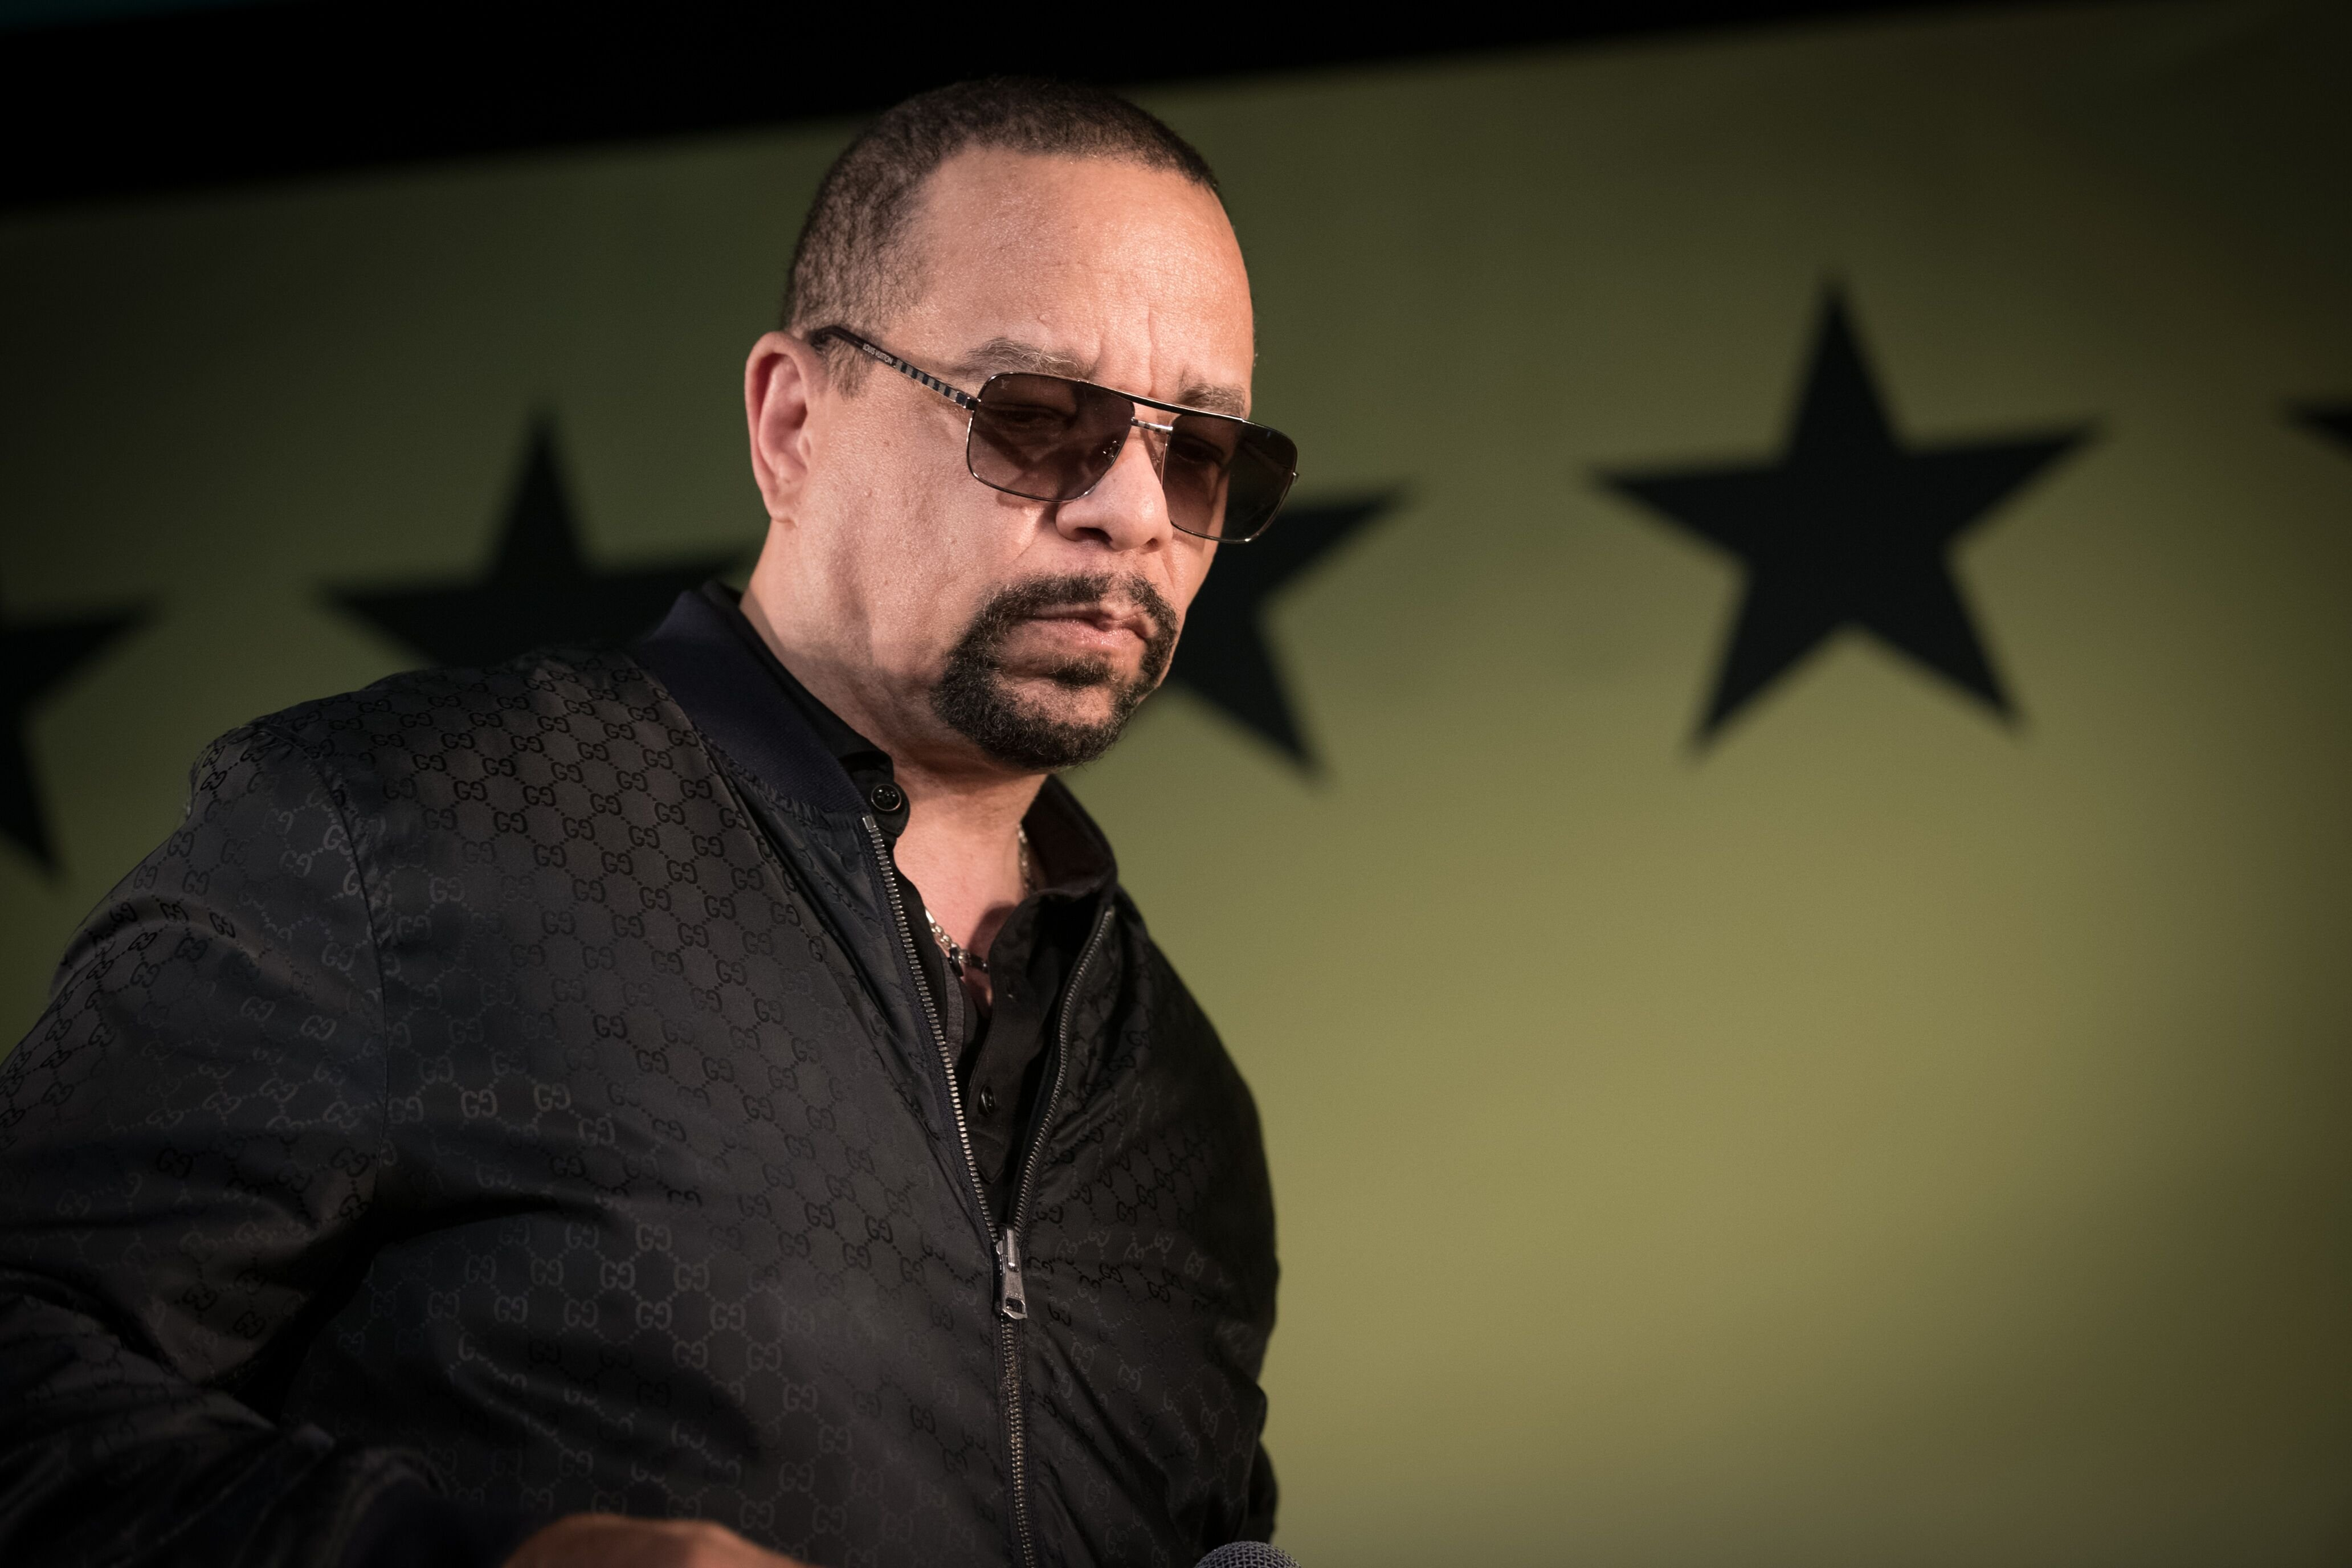 Ice-T performs at the Uncle Jamm's Army Reunion. | Source: Getty Images